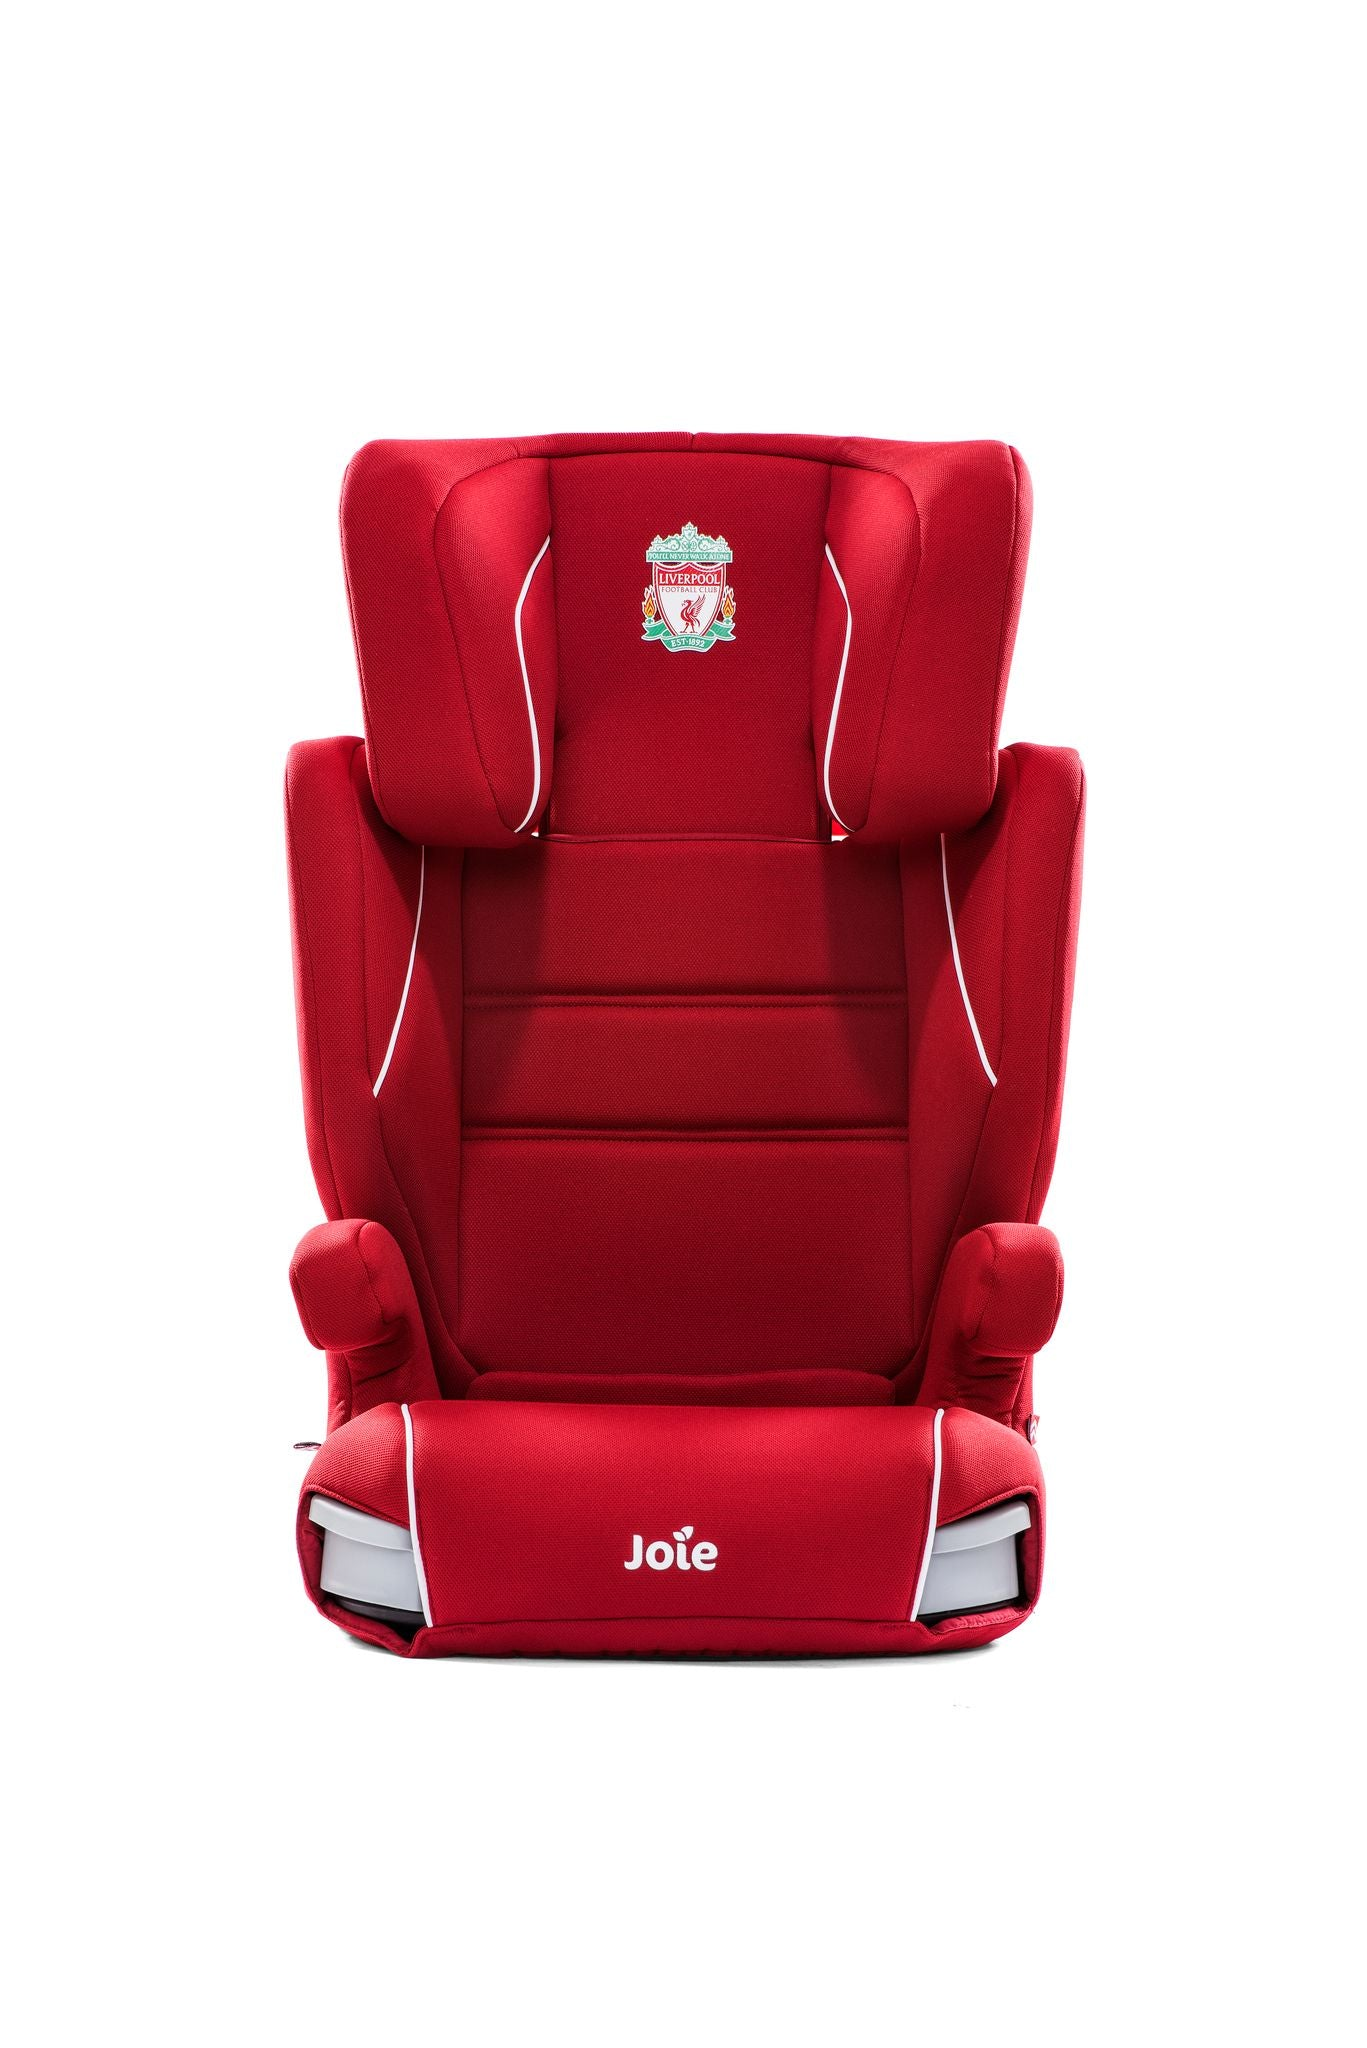 Joie - Web Only Trillo Car Seat Lfc